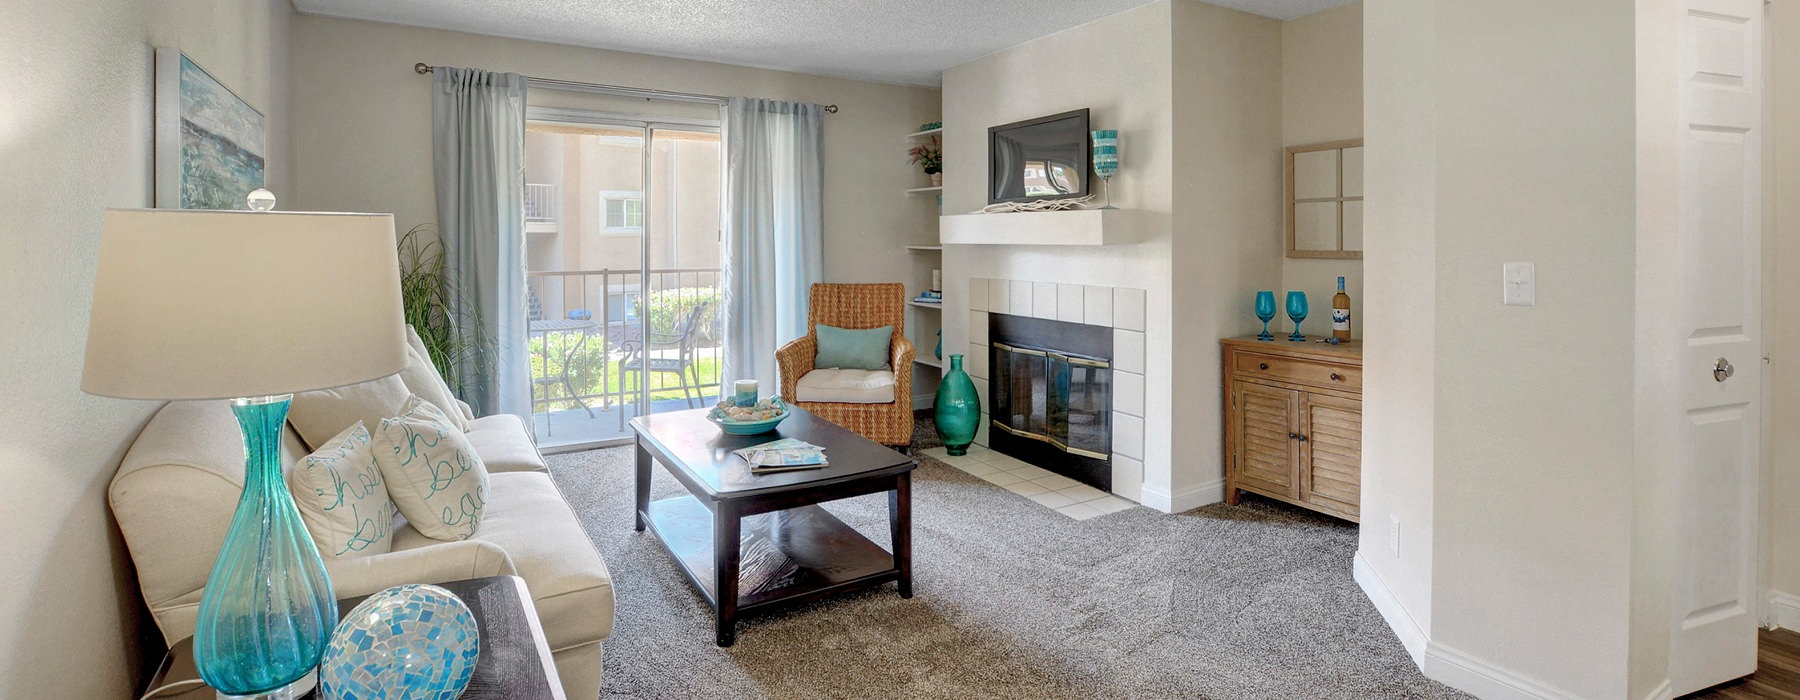 living room includes sliding glass door providing access to private patio